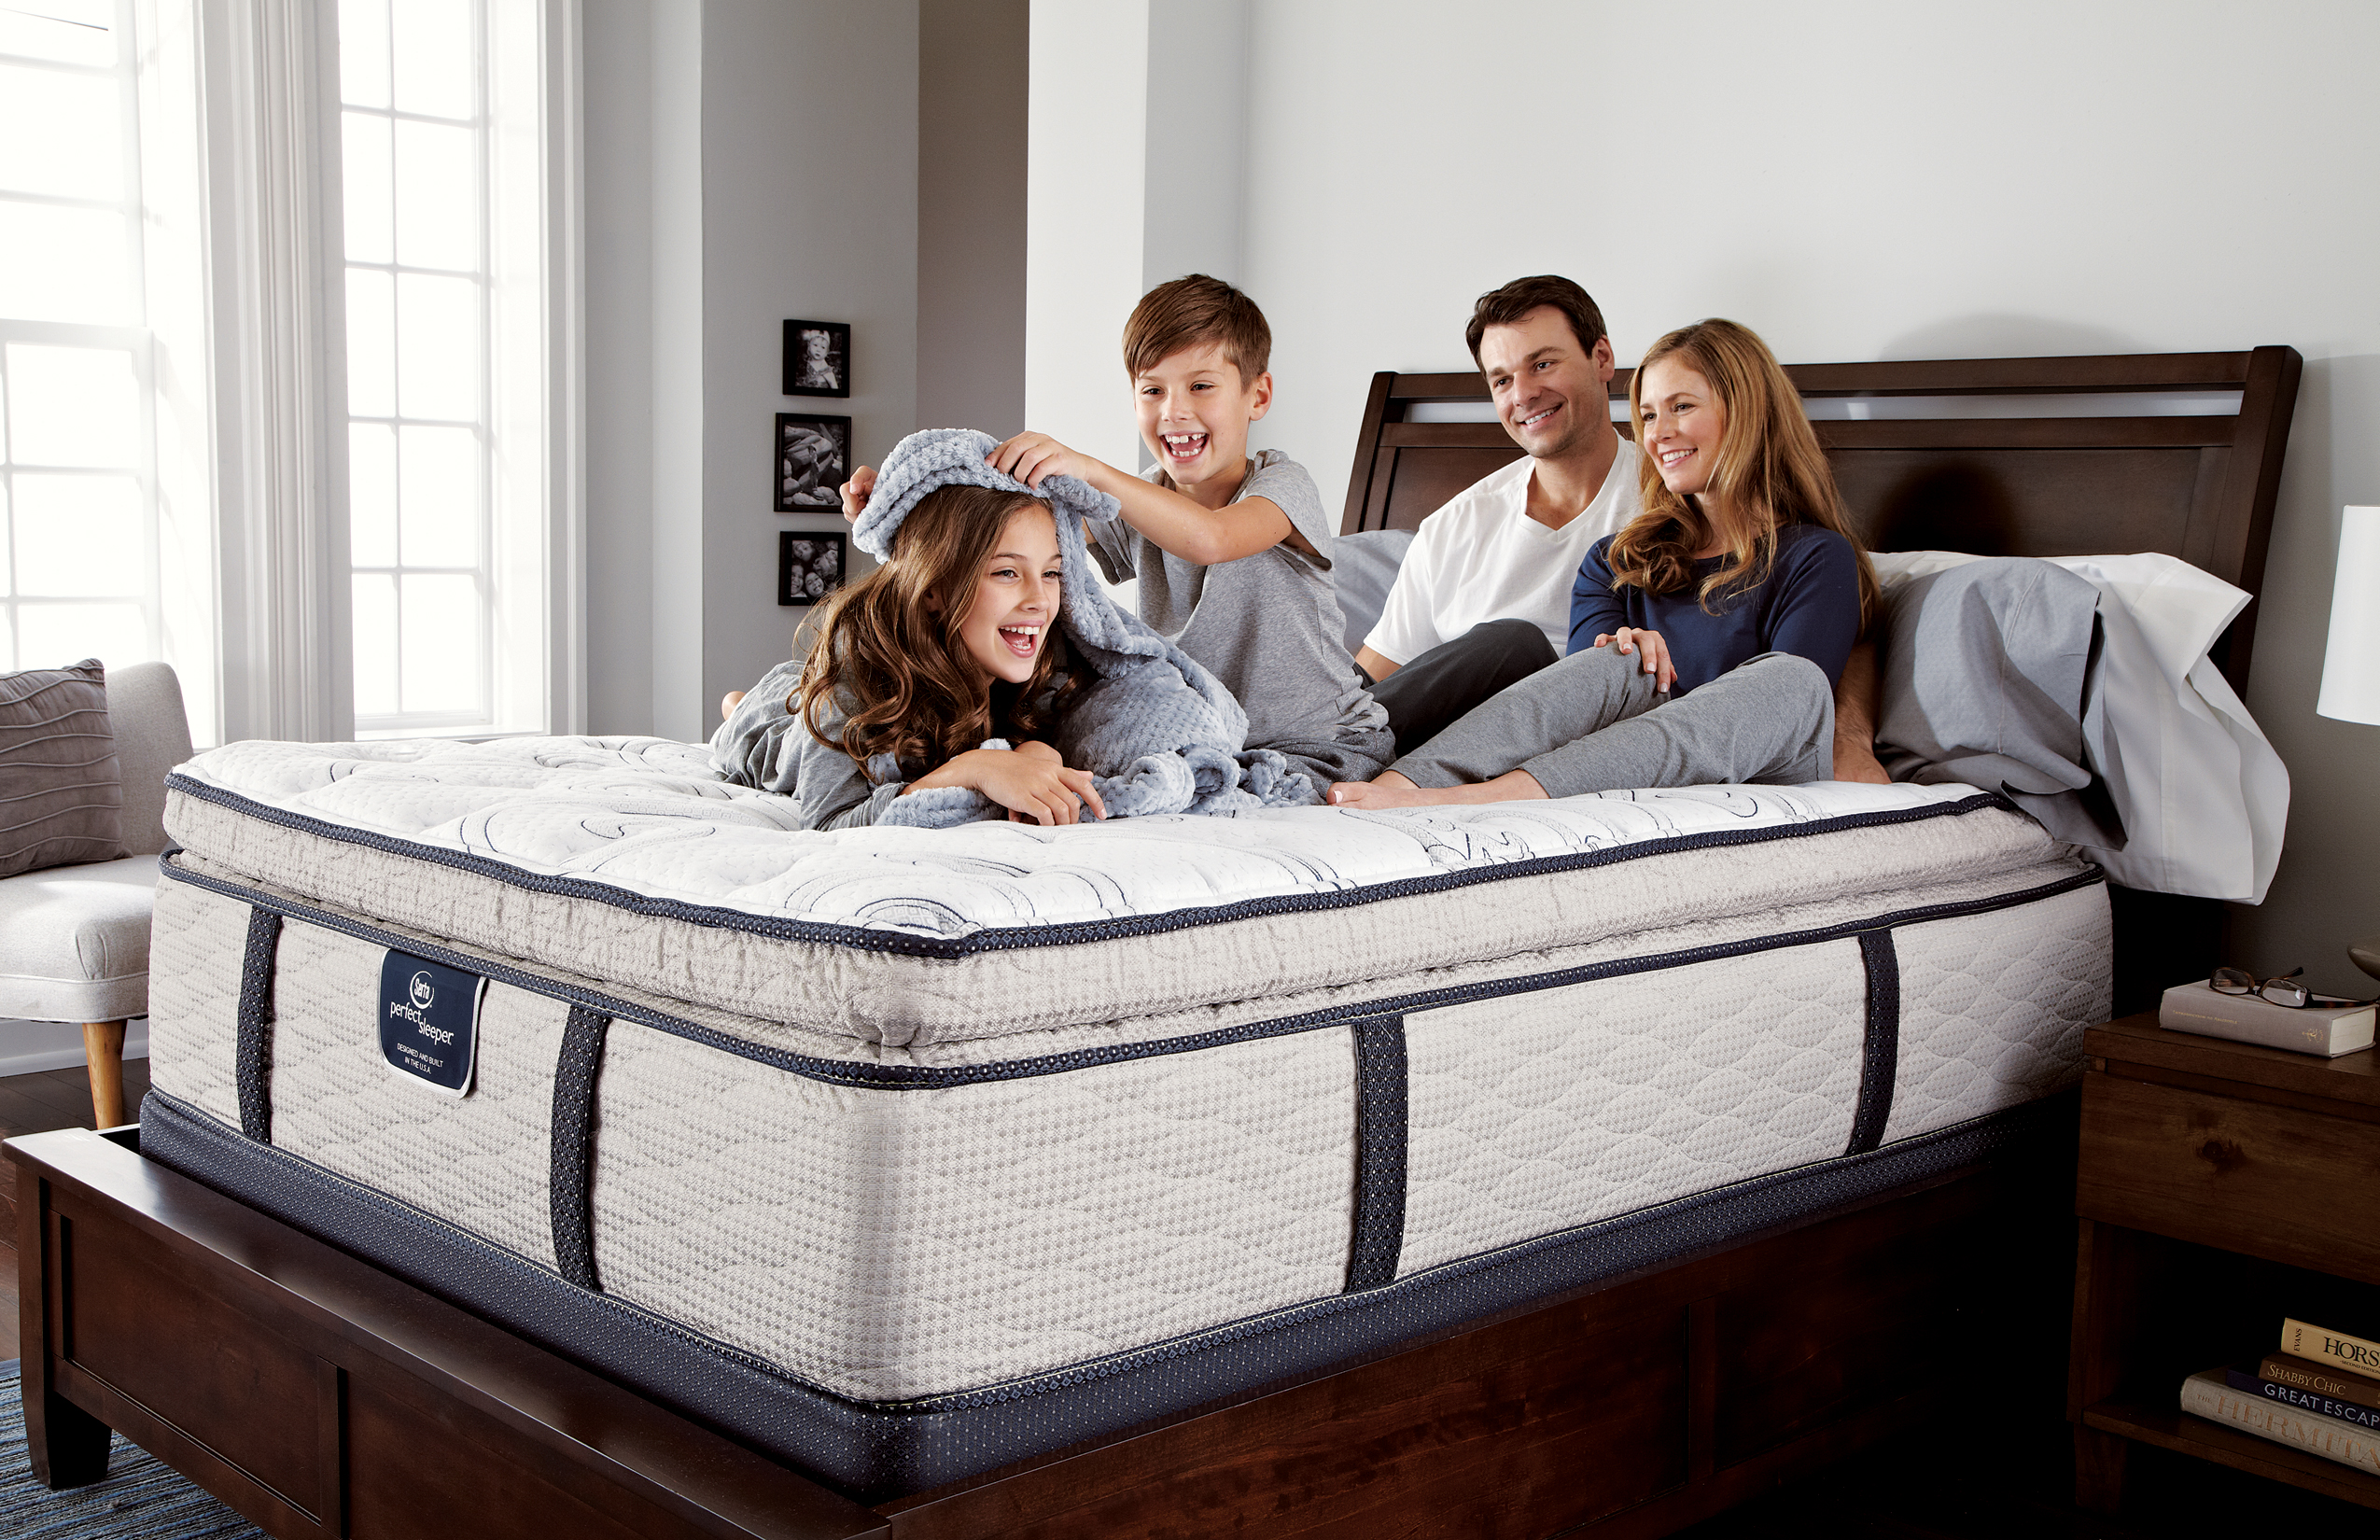 goodbed decor firm choice models lytton reviews mattress serta awesome image smart of